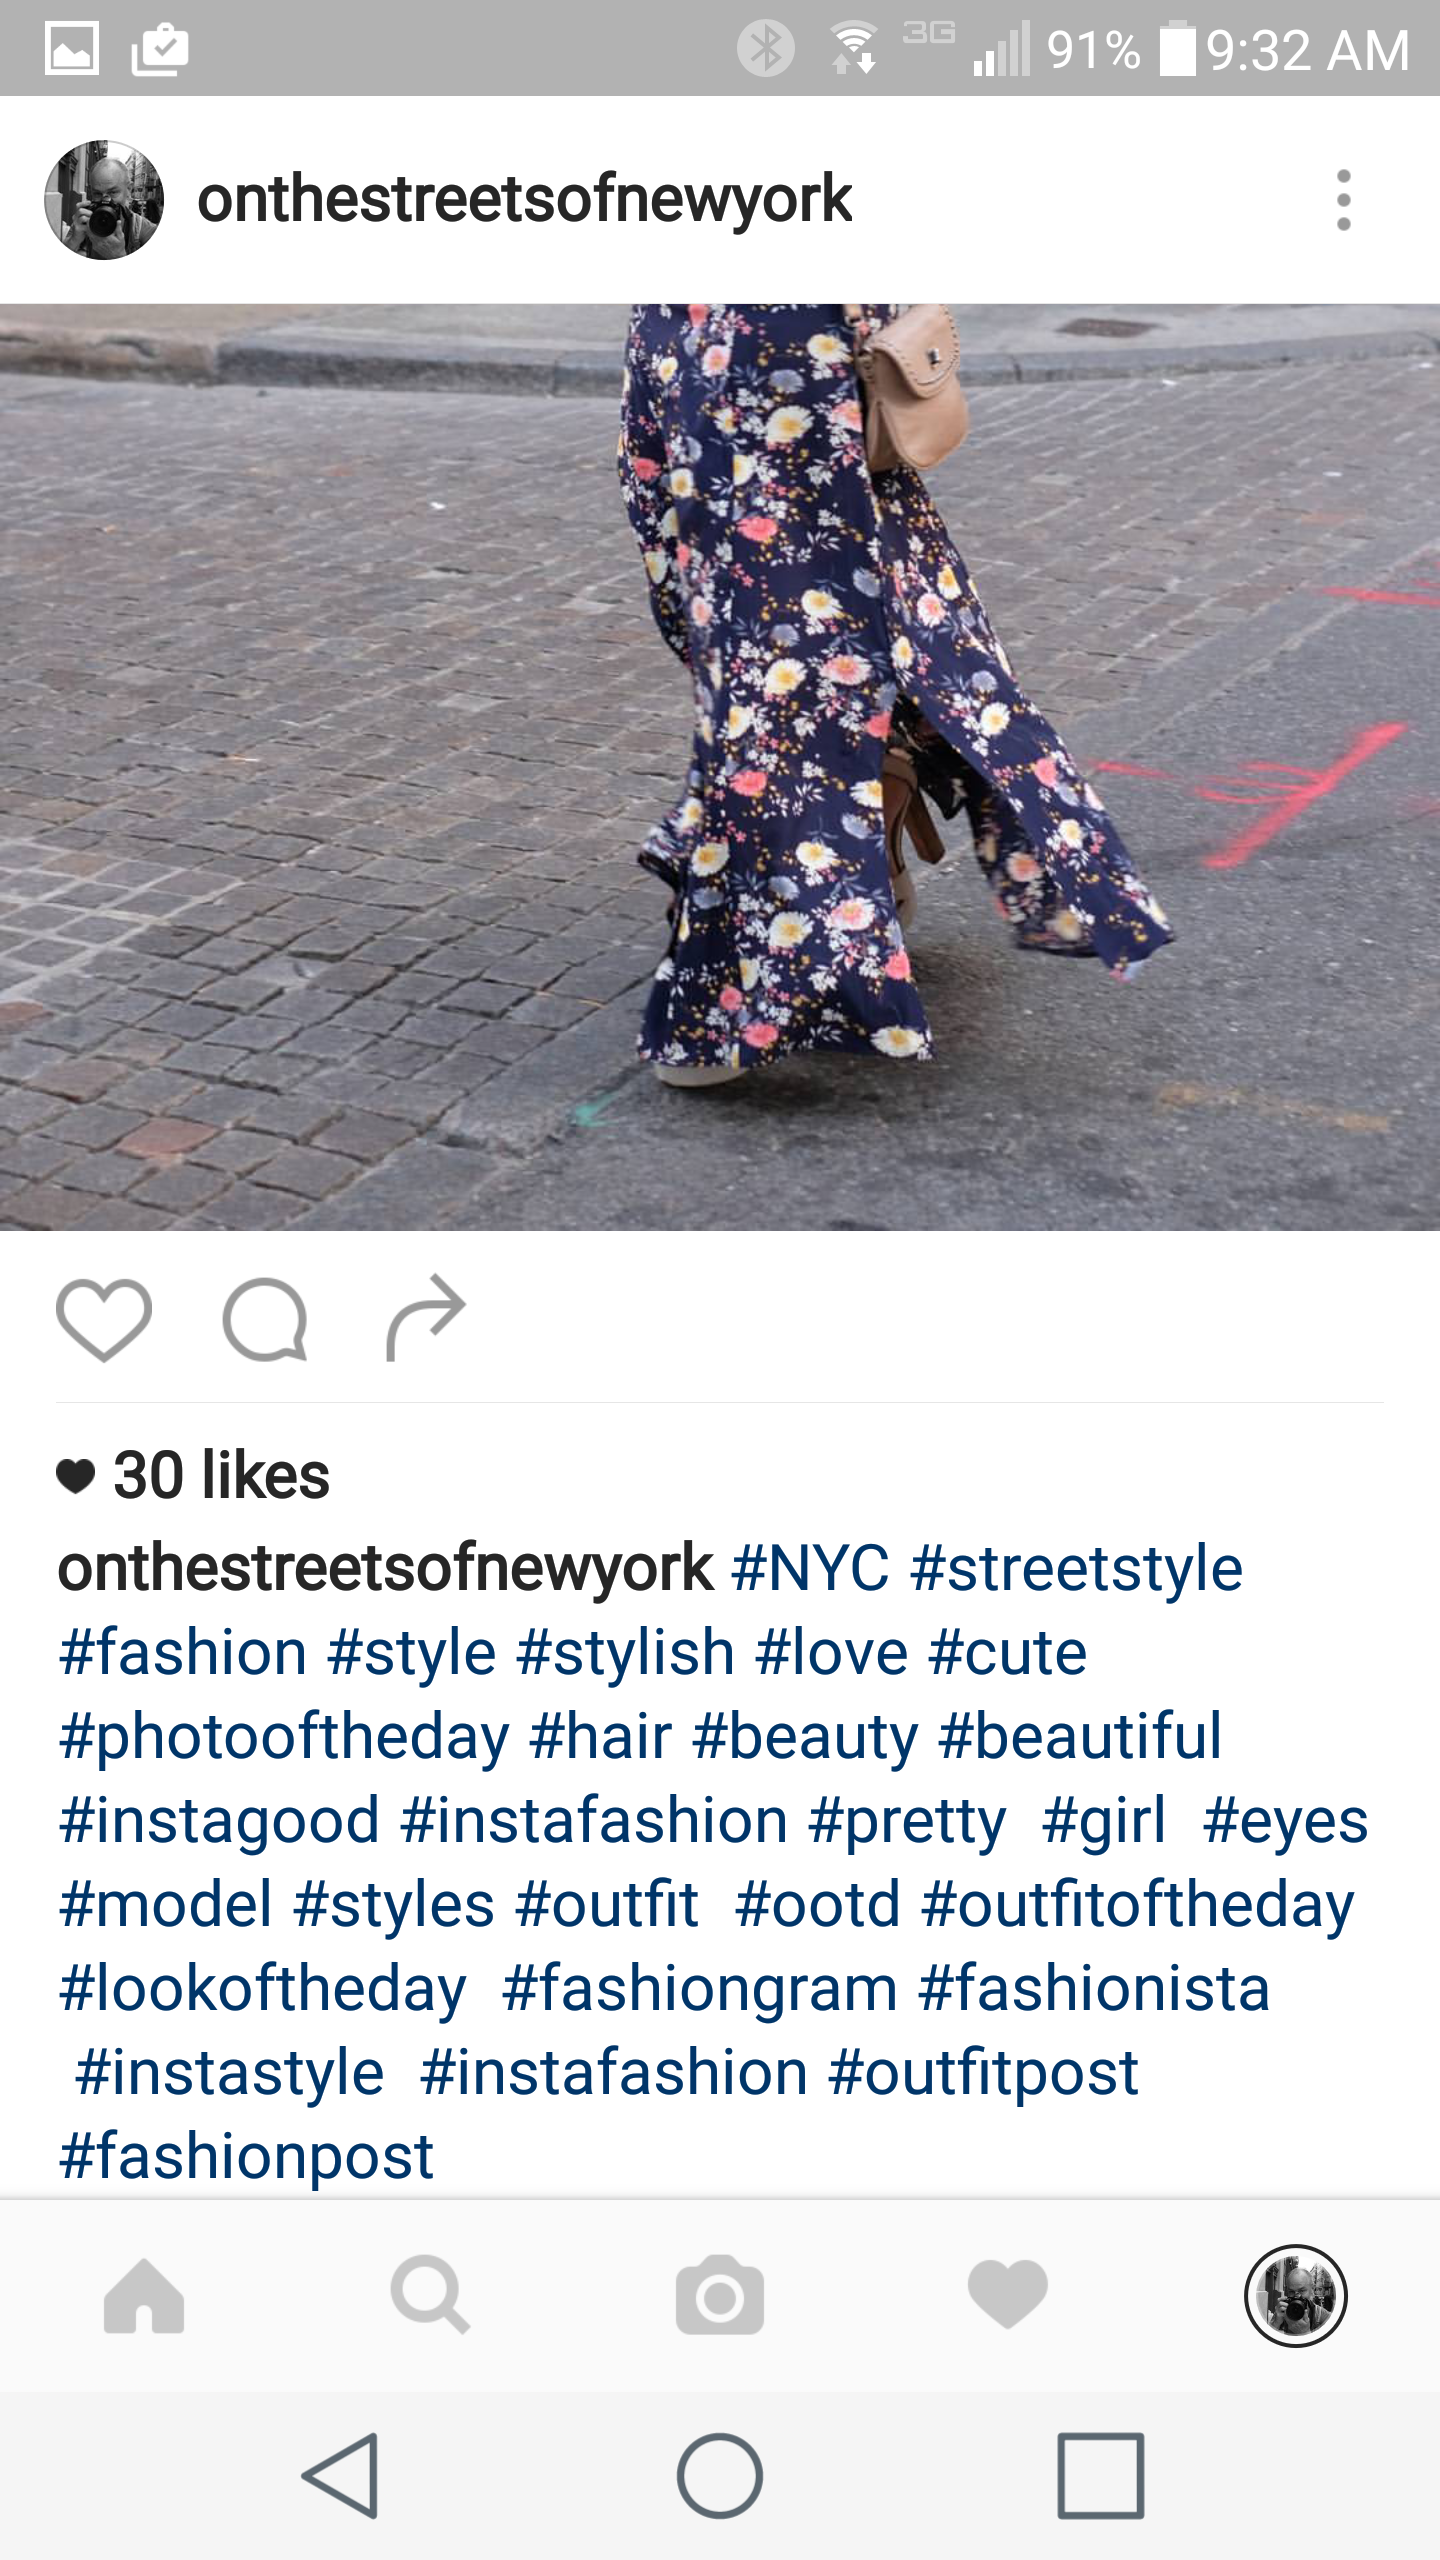 screenshot of an Instagram post with hashtags